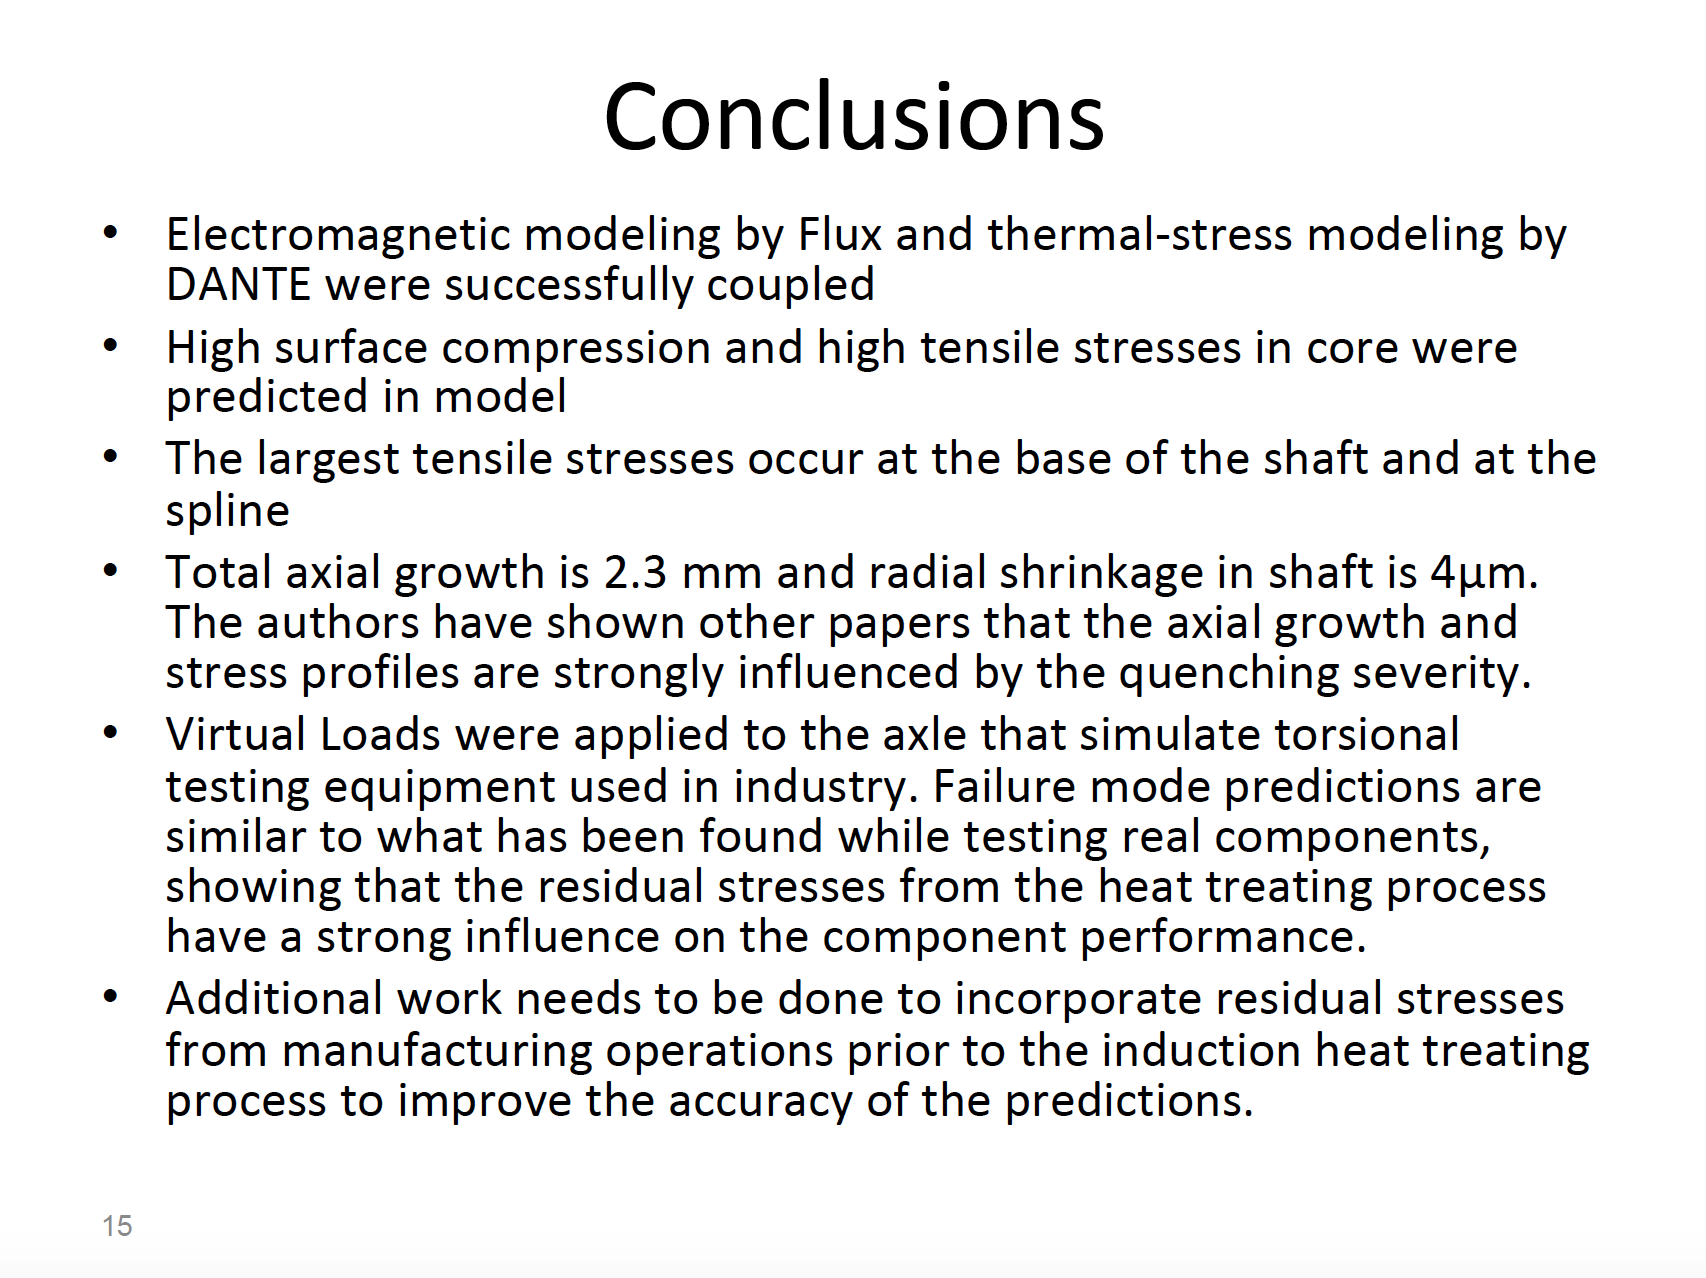 Fluxtrol | Integrated Computational Development of Induction Heat Treatment Process for Automotive Axle Shafts Figure 14 - Conclusions